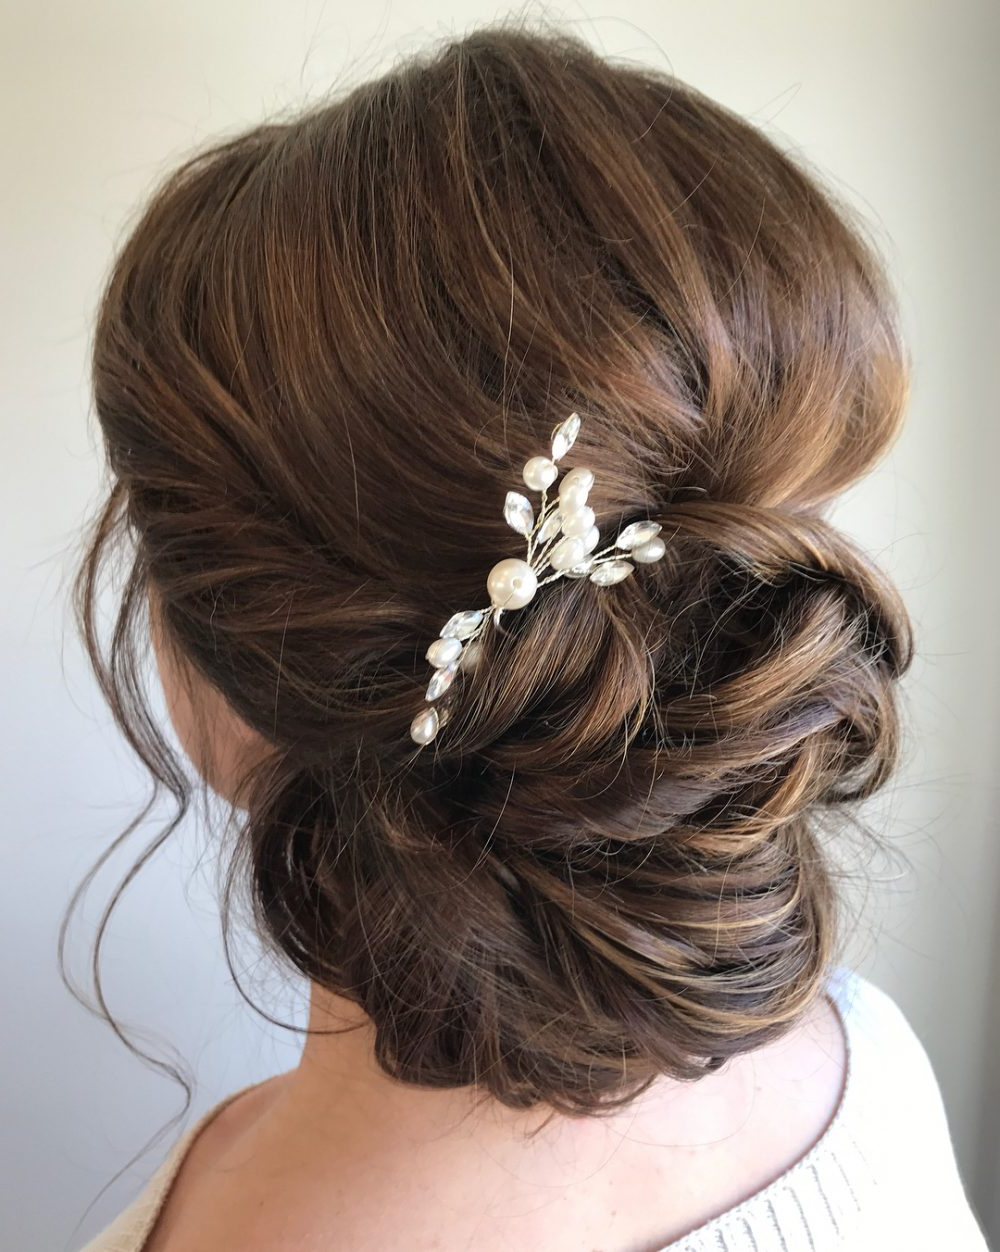 33 Breathtaking Loose Updos That Are Trendy For 2019 Inside Preferred Long And Loose Side Prom Hairstyles (Gallery 8 of 20)